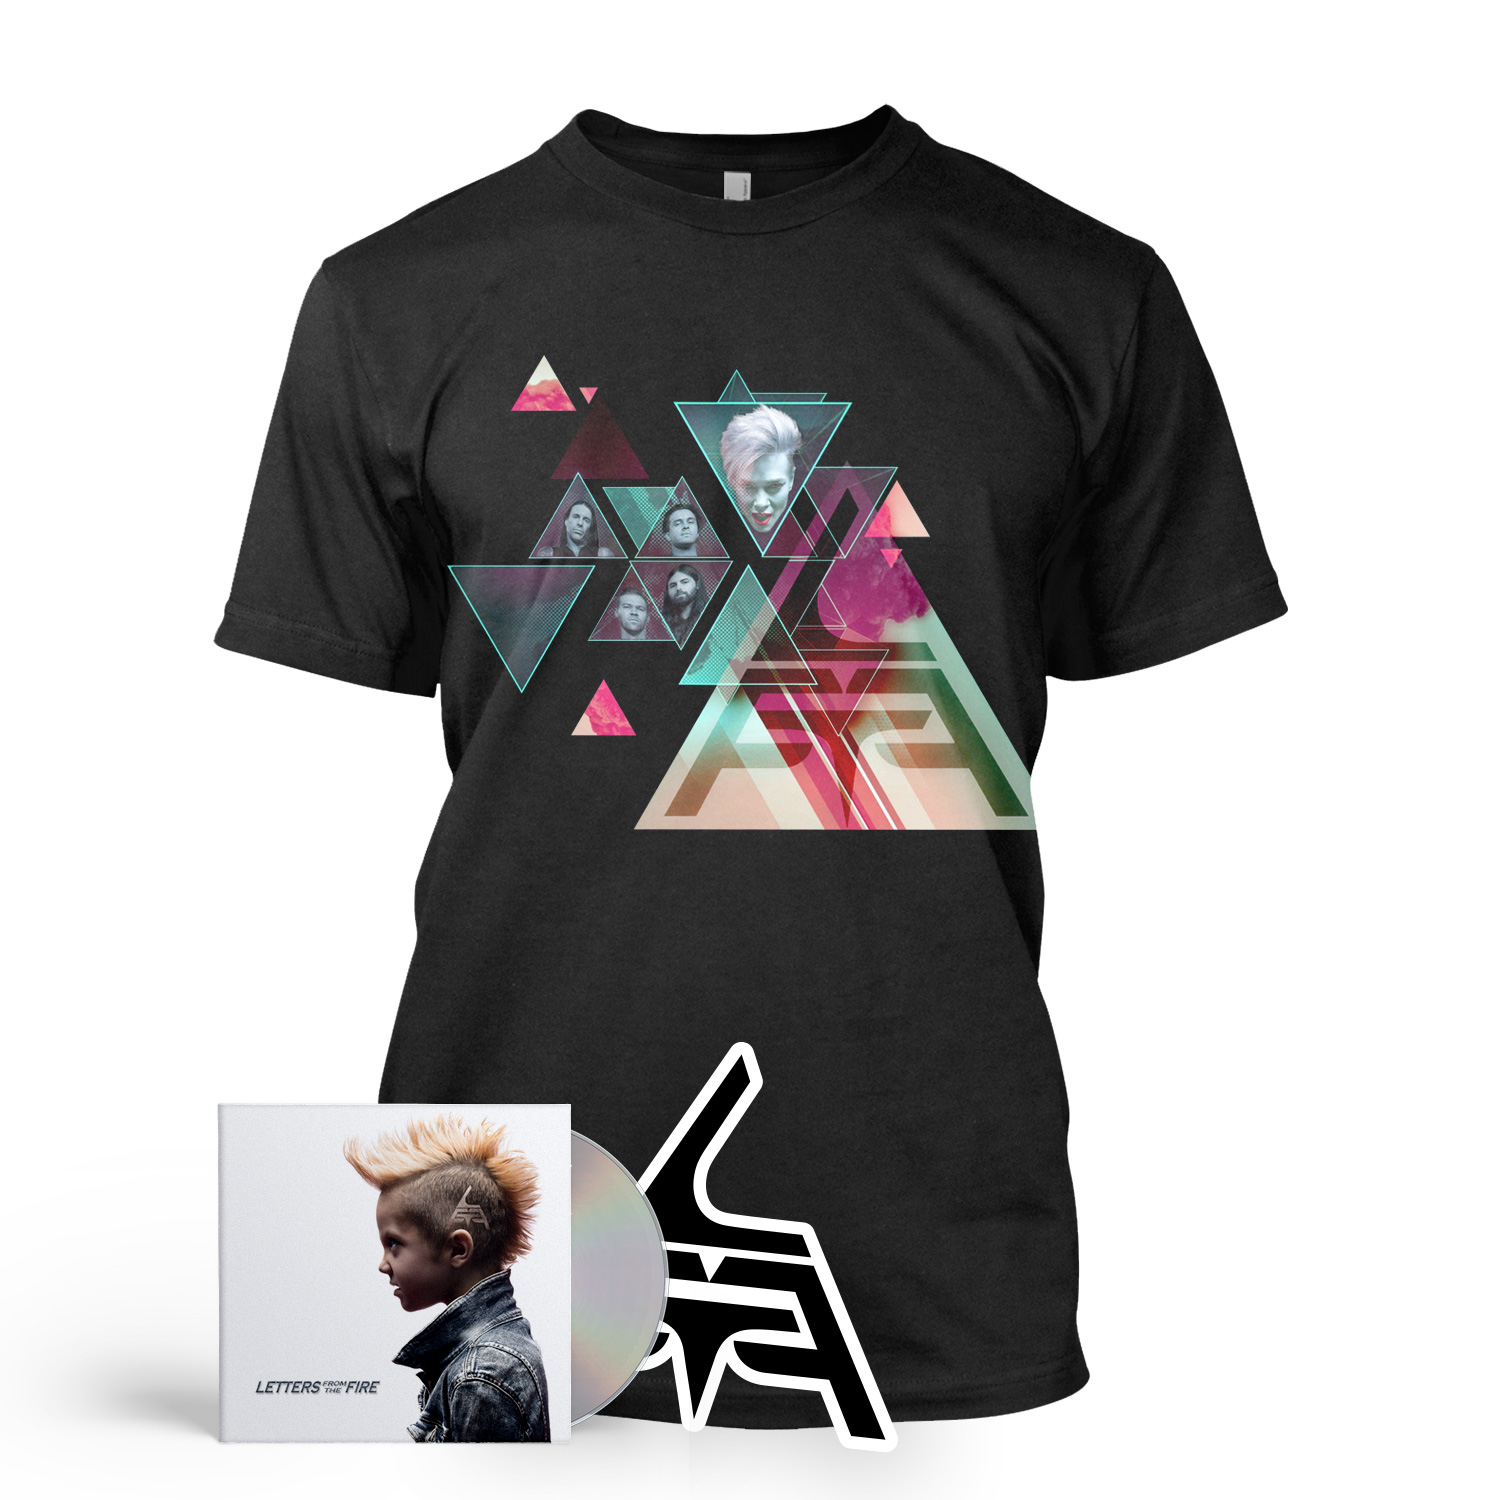 CD/Abstract Tee Bundle